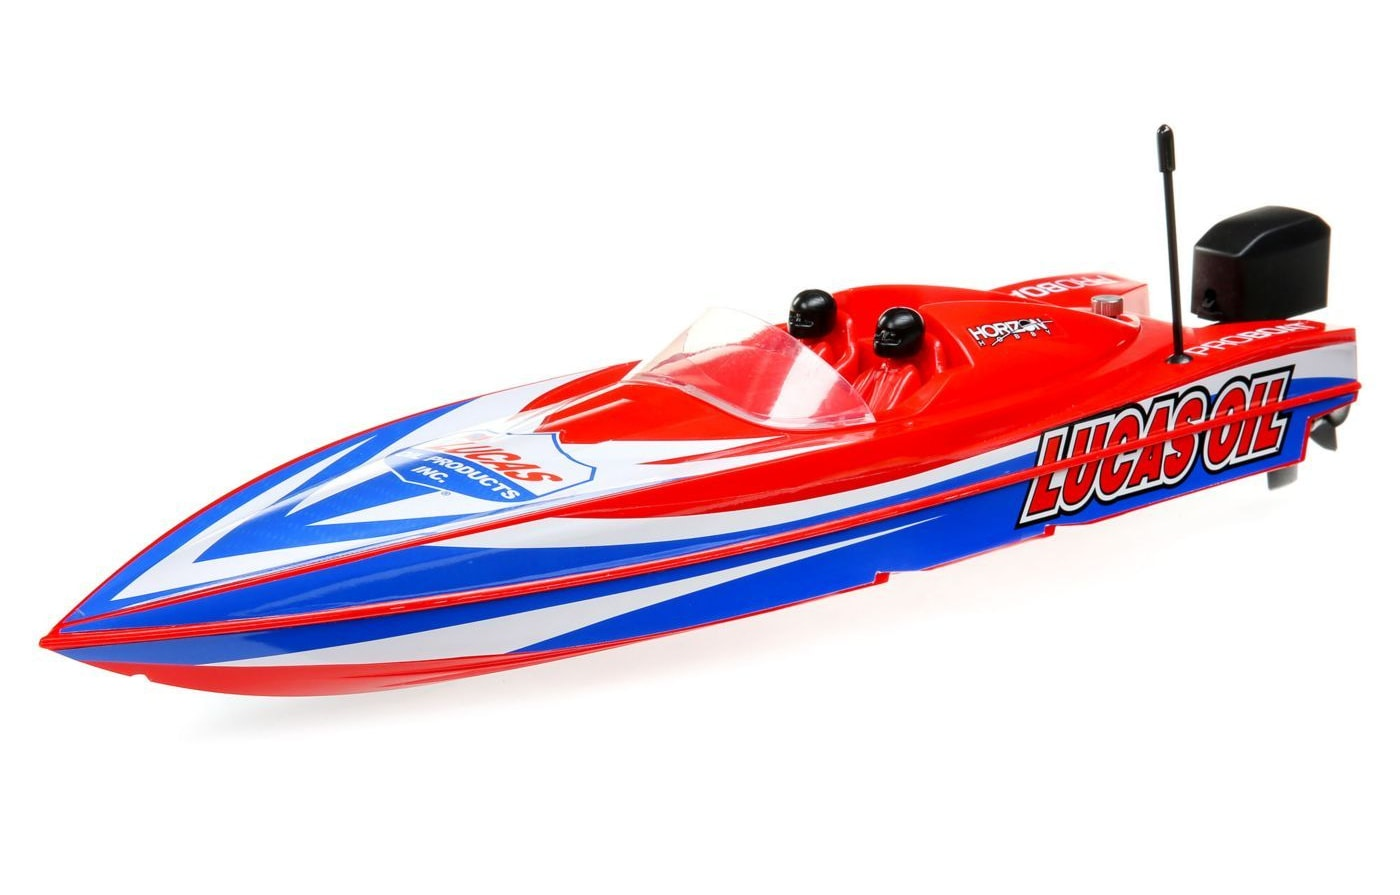 "Wave Machine: Pro Boat 17"" RTR Power Boat Racer"